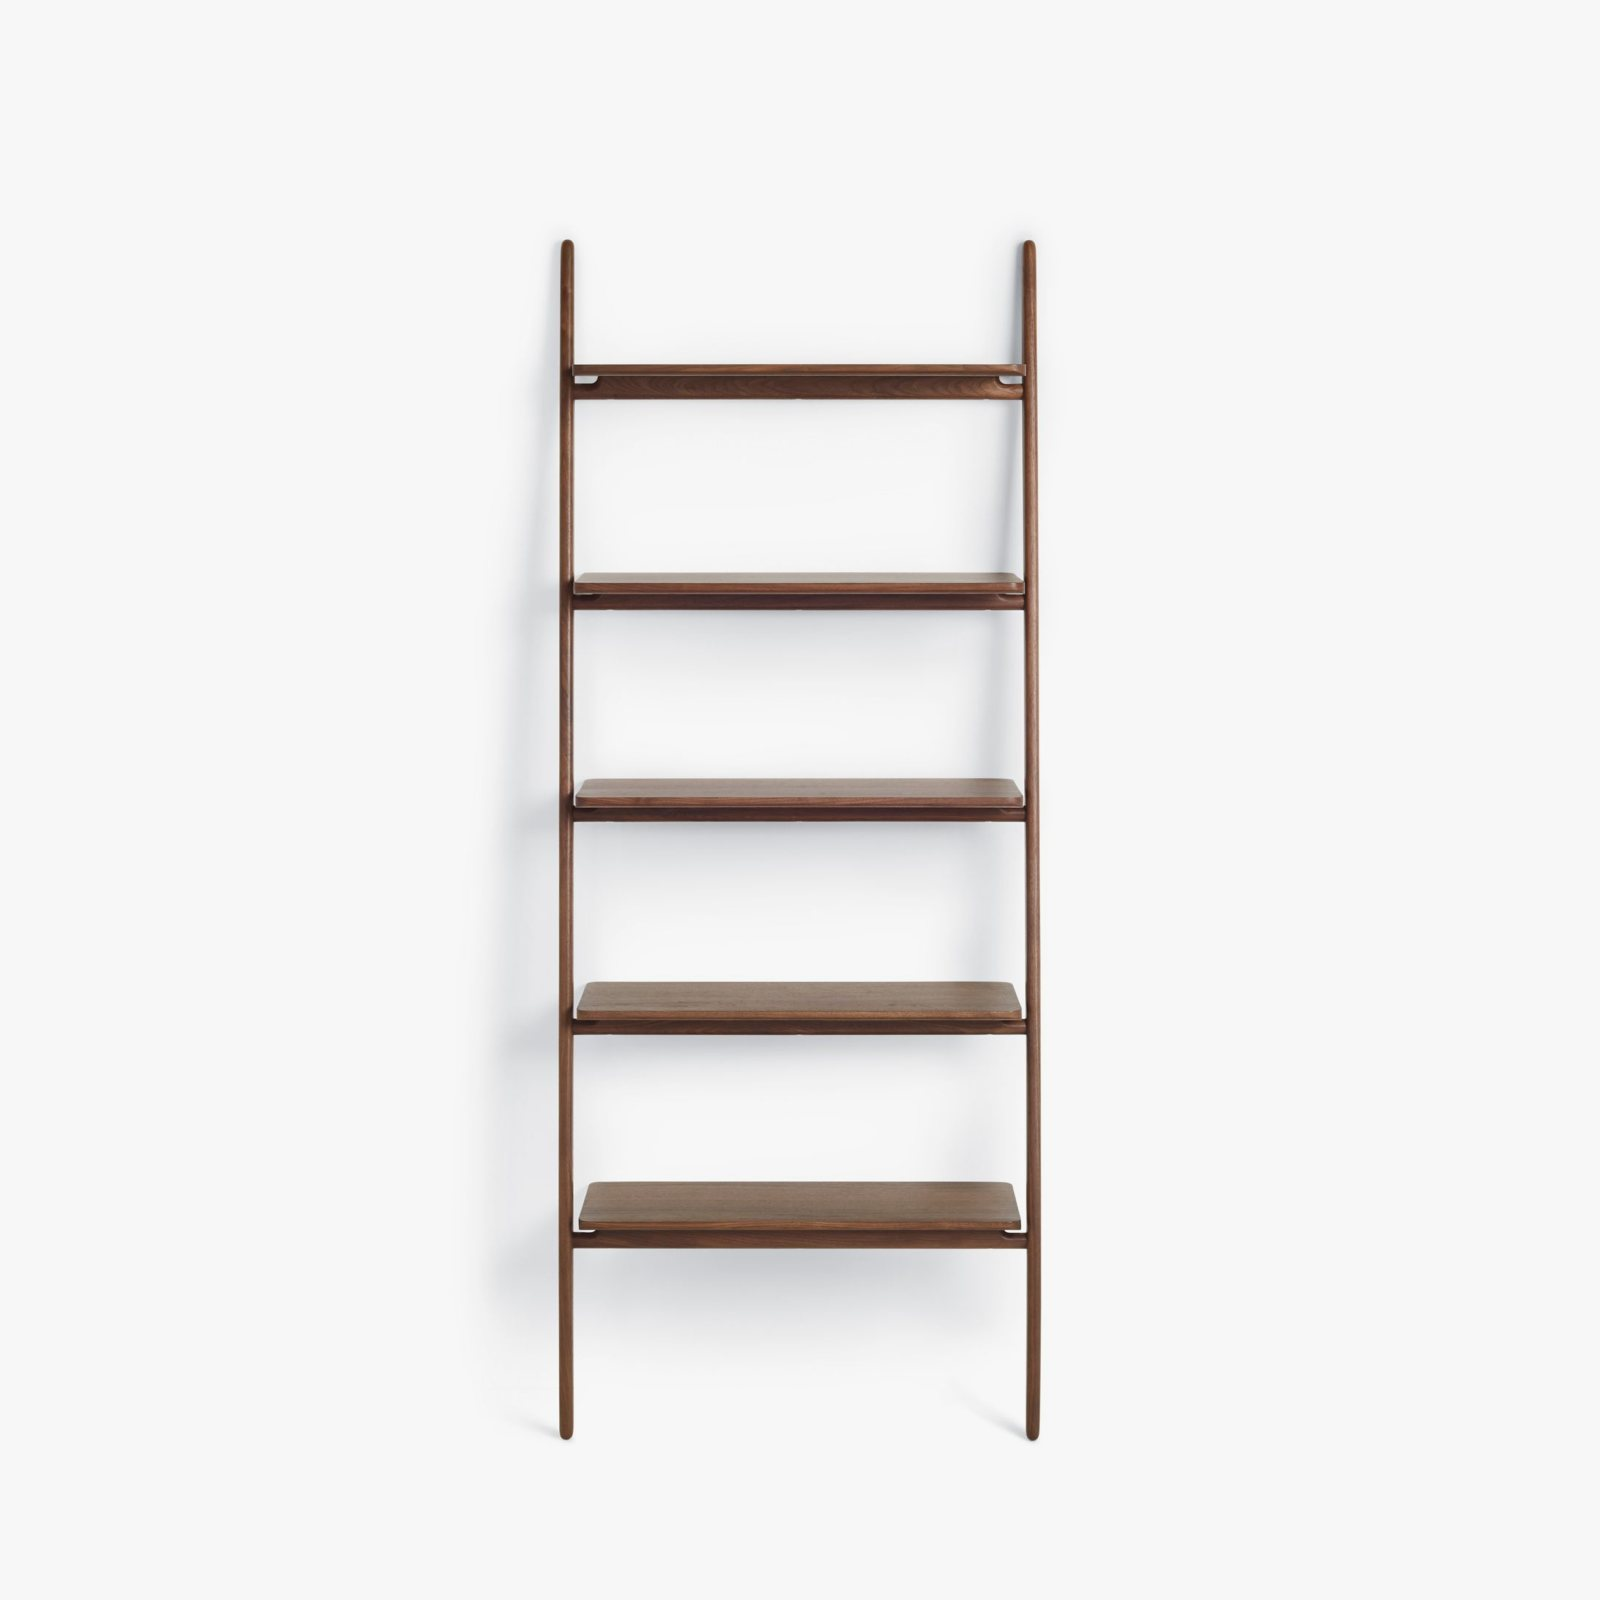 Folk Ladder Shelving By Norm Architects For Design Within